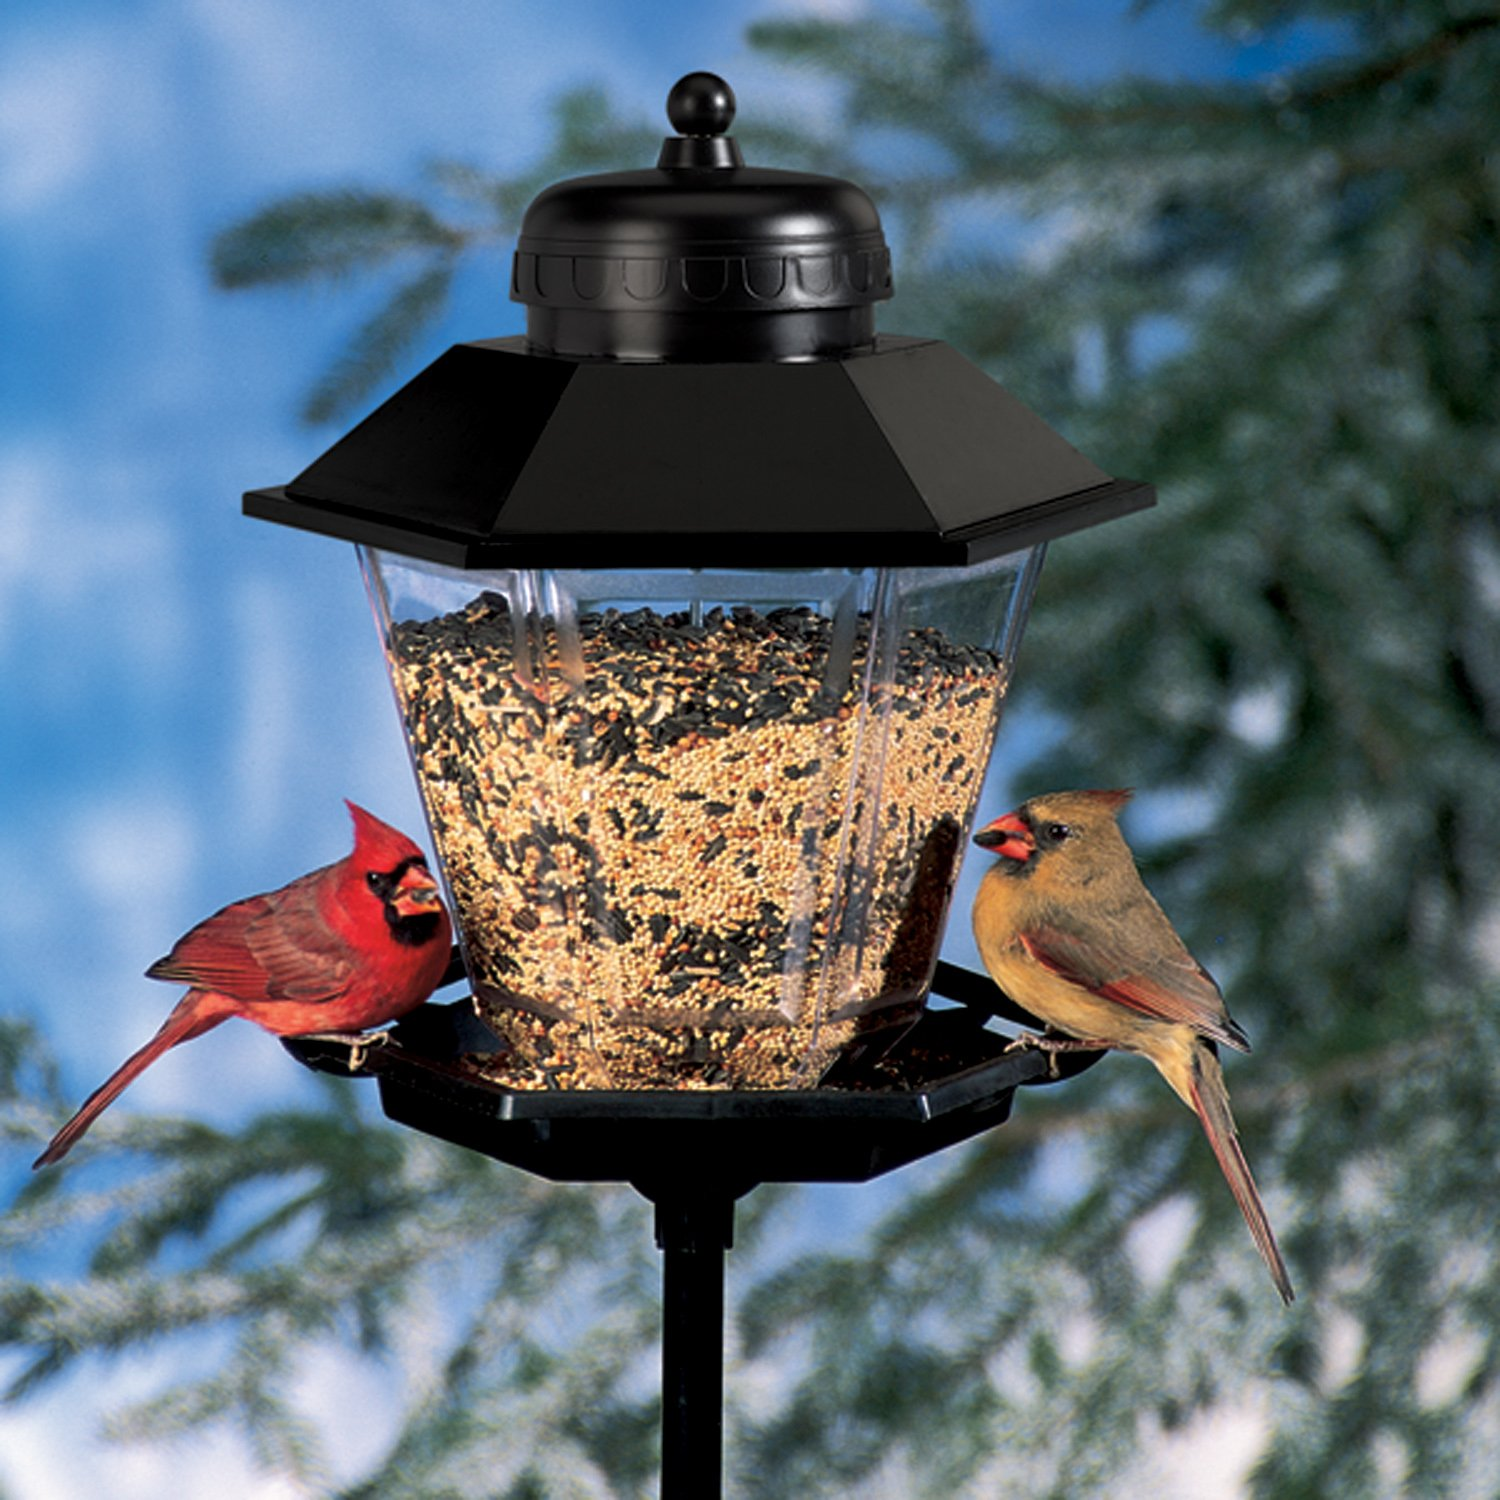 bird pole squirrel cool feeding sold proof universal gazebo mounted compact kit station designs feeders feeder